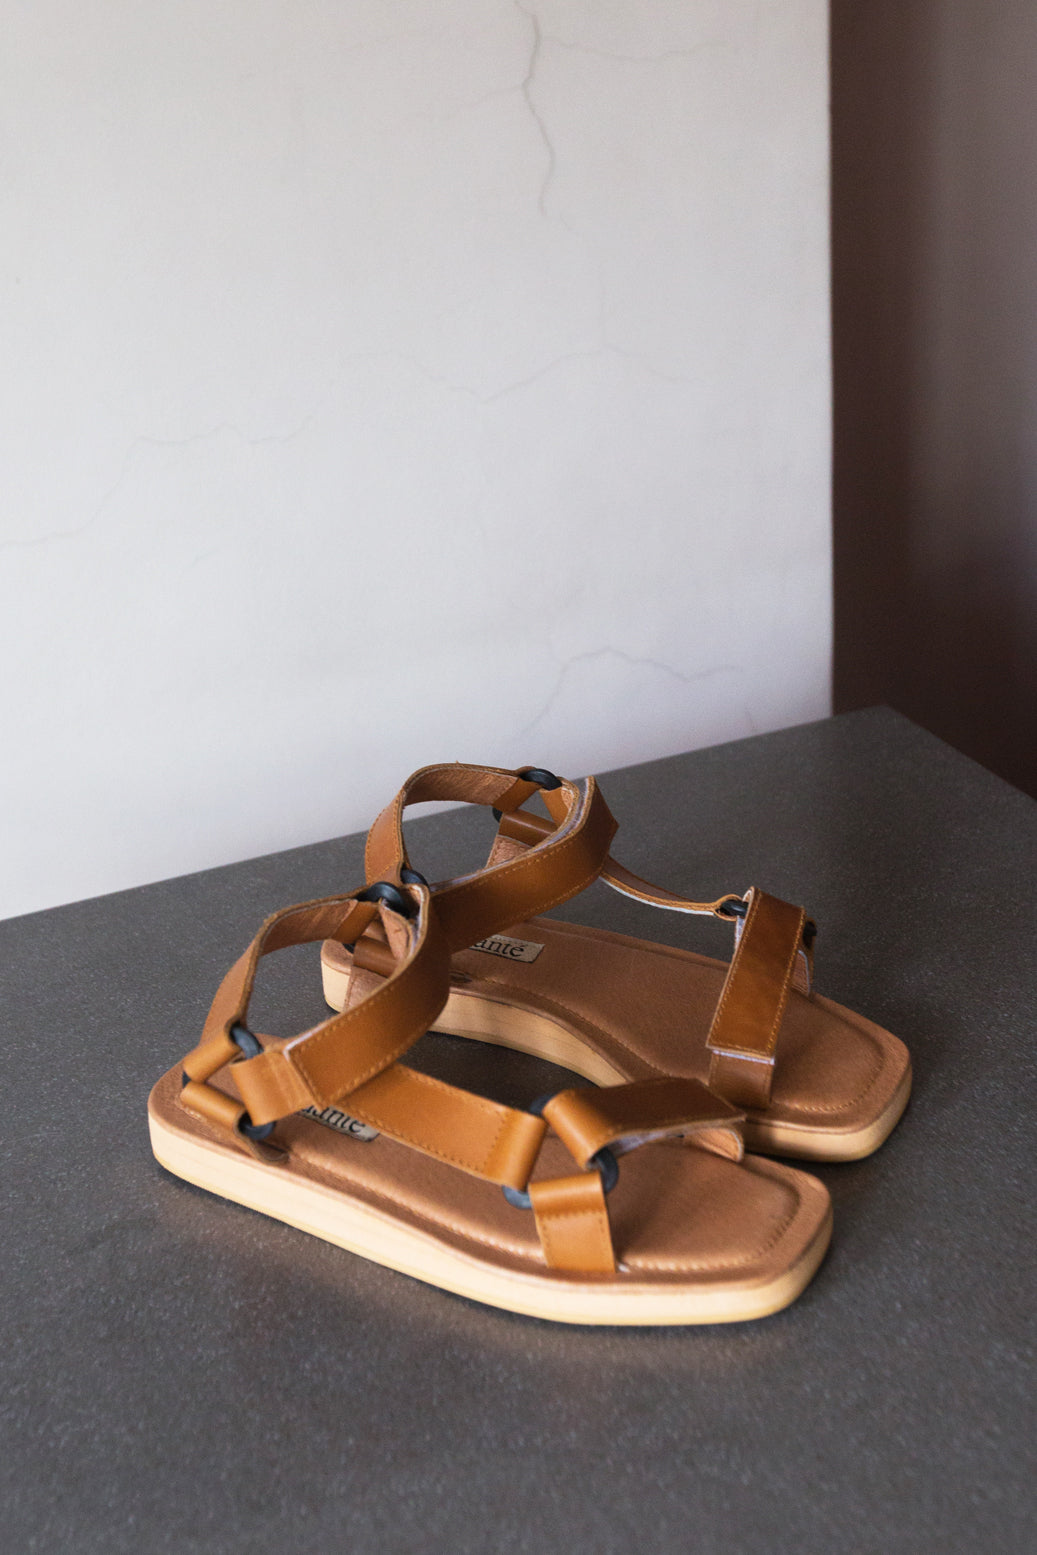 The Sportif Sandal in Tan - andanté, sandals - loafers, sandals leather footwear